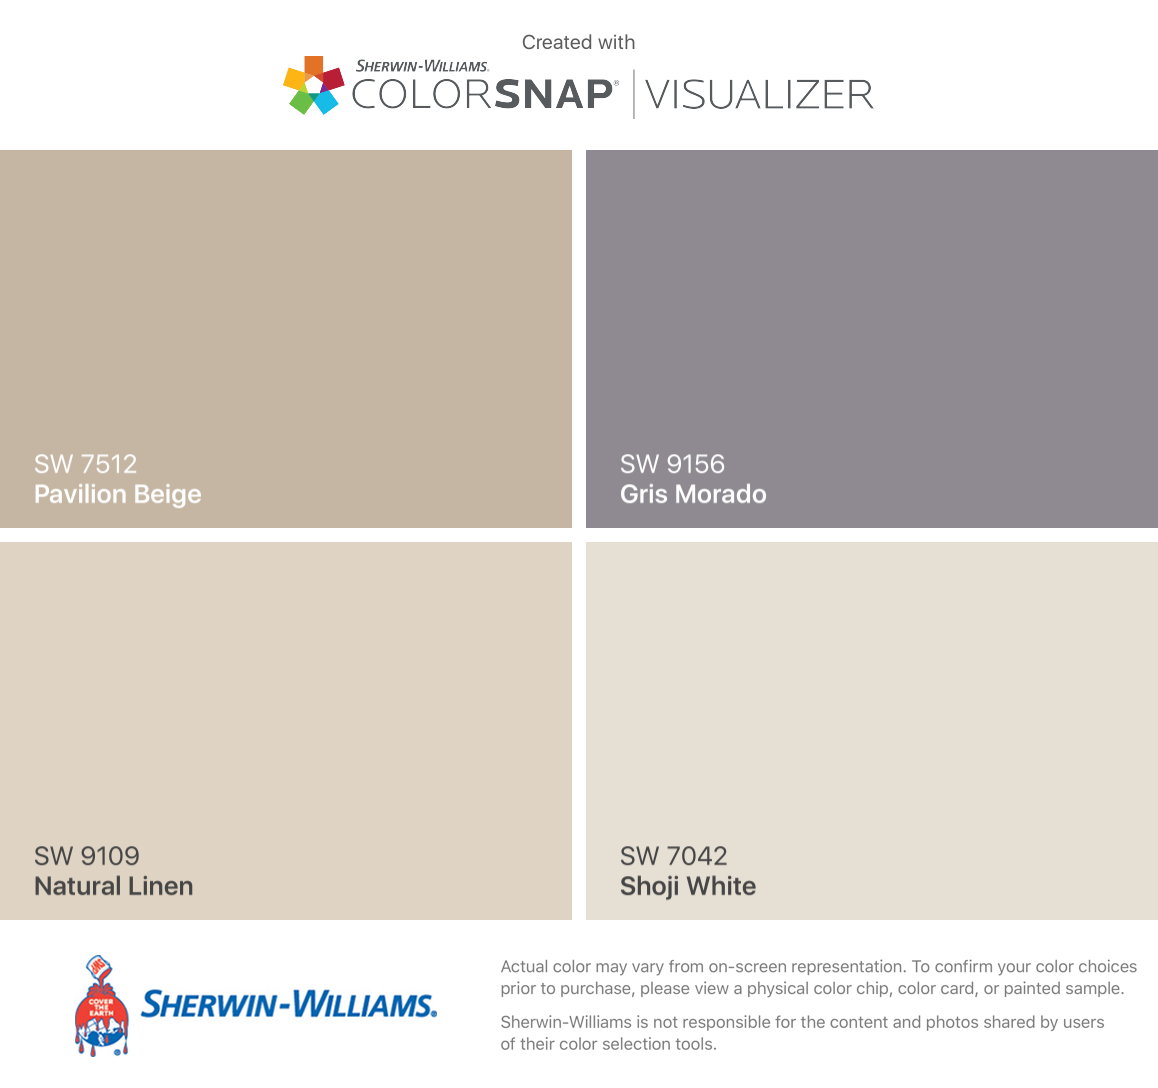 I Found These Colors With ColorSnap® Visualizer For IPhone By Sherwin Williams:  Pavilion Beige (SW 7512), Natural Linen (SW 9109), Gris Morado (SW 9156),  ...